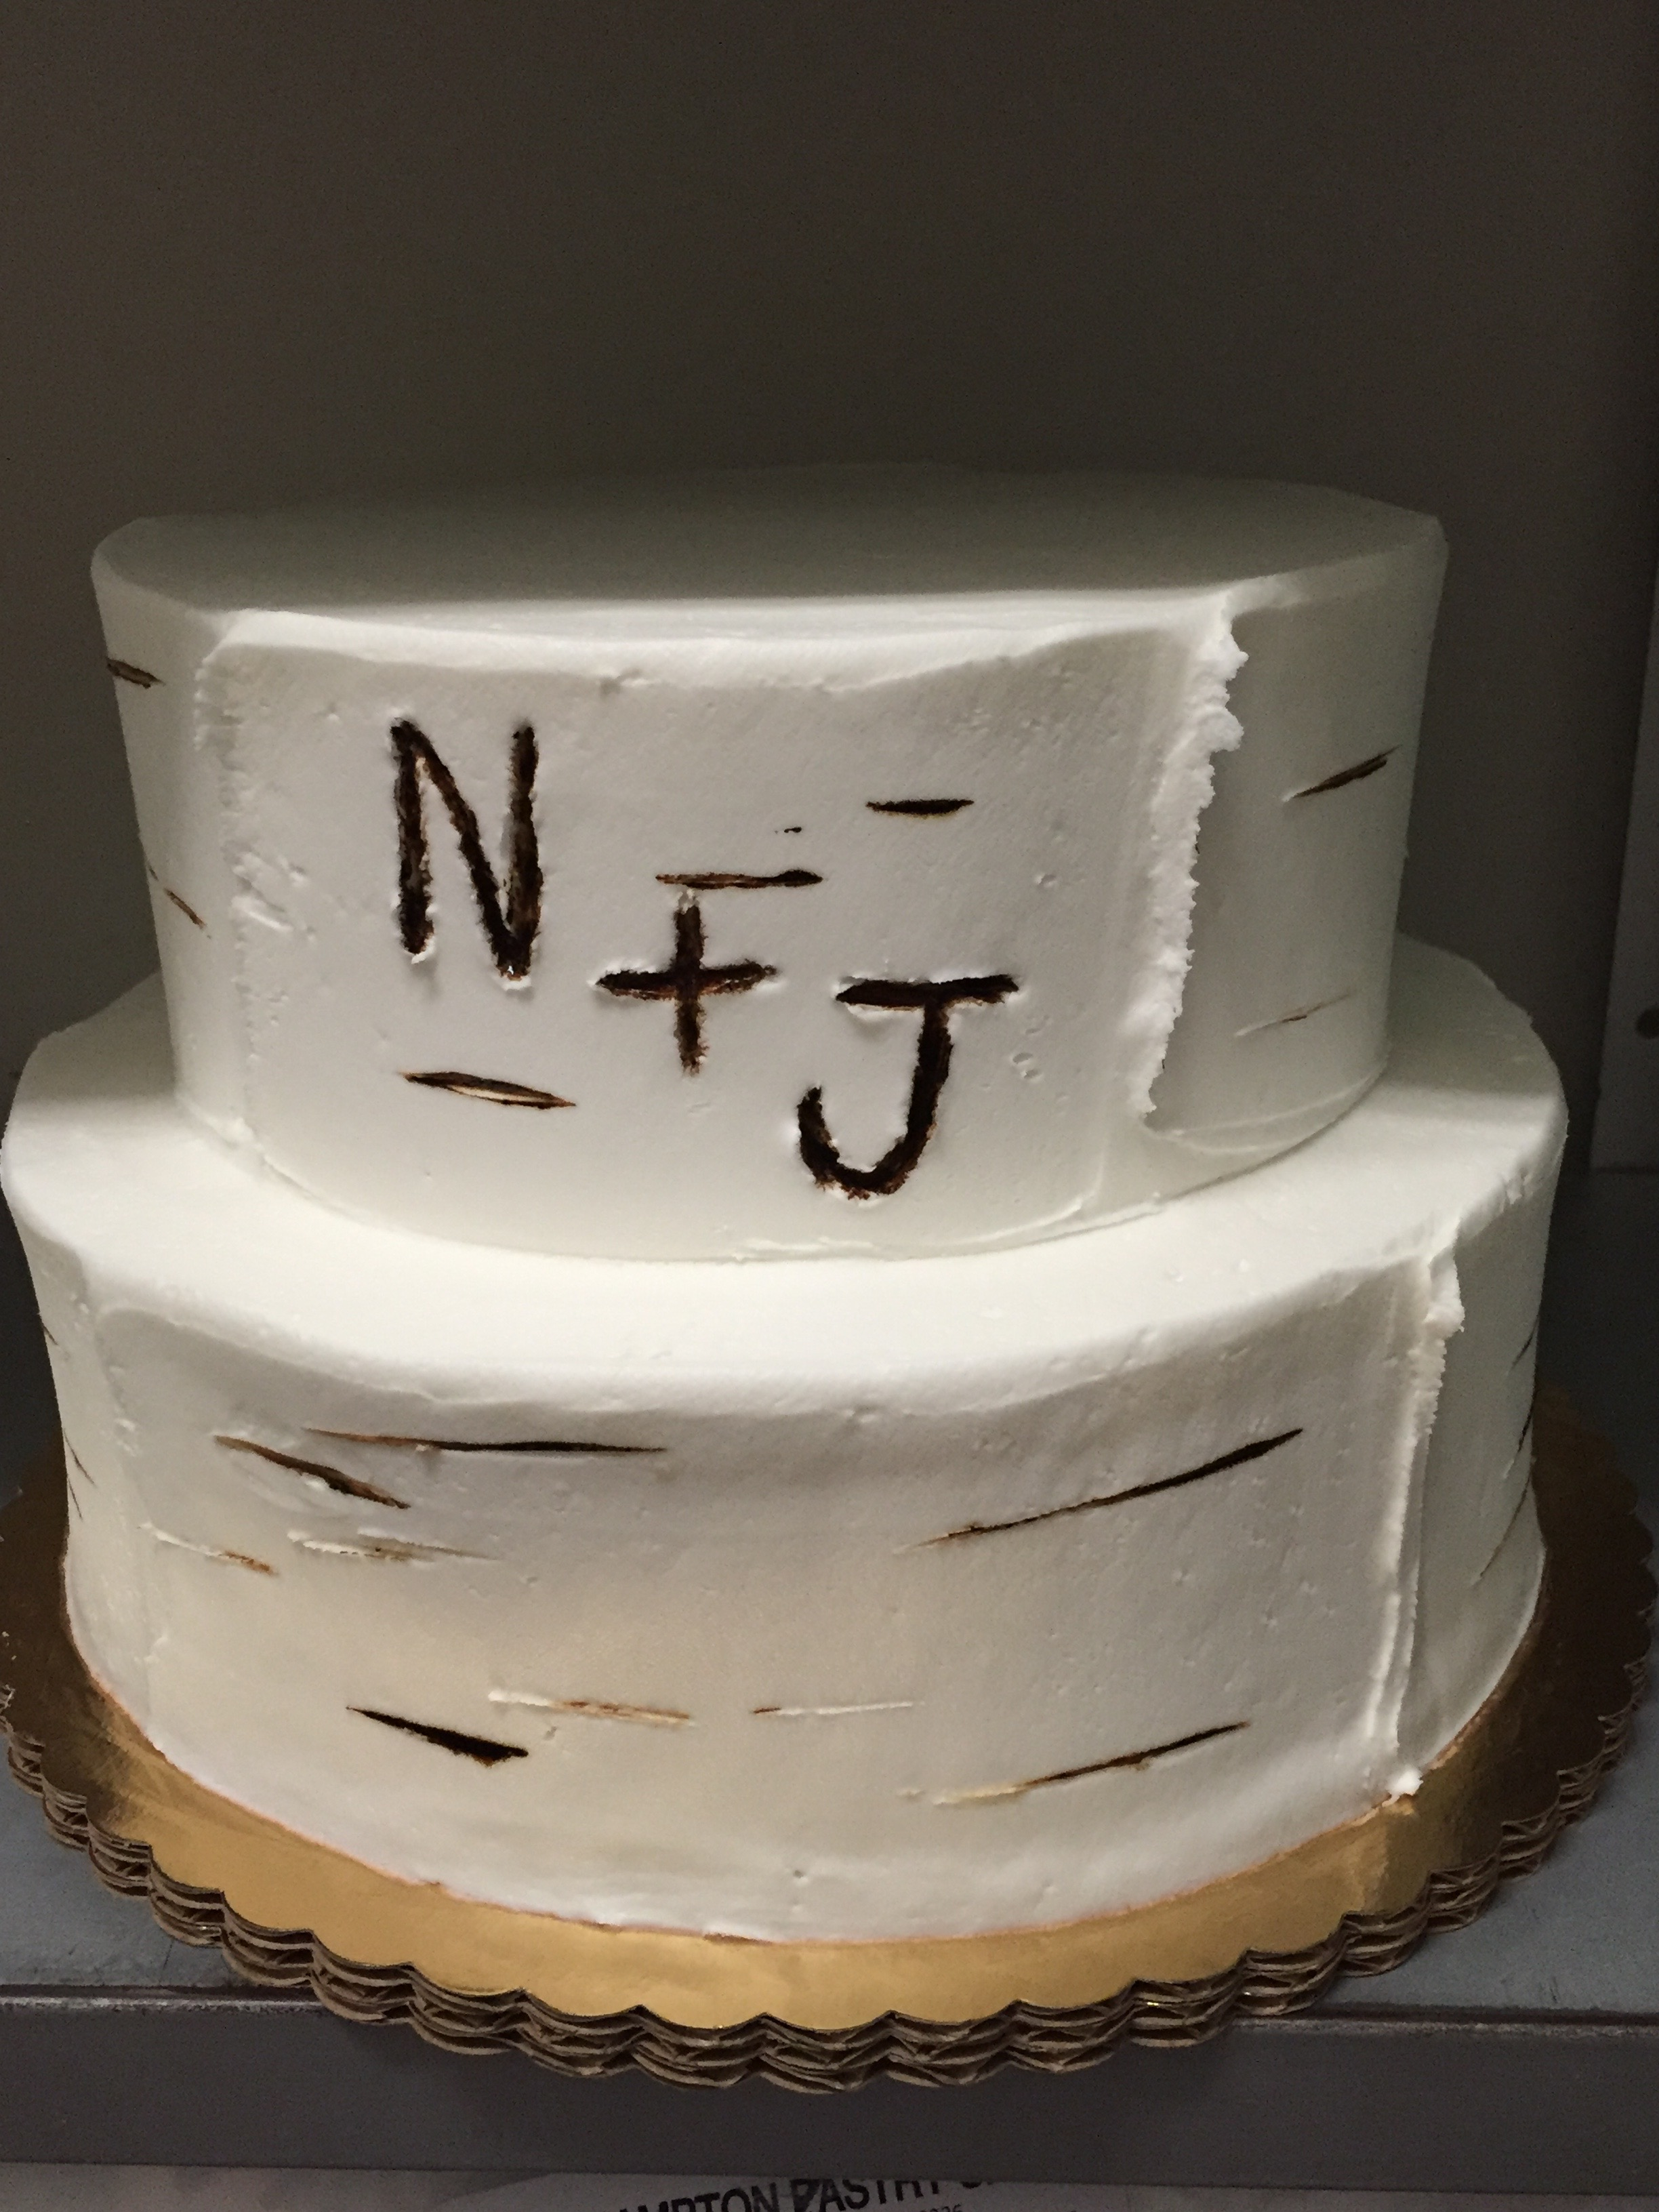 Initials in Tree Cake